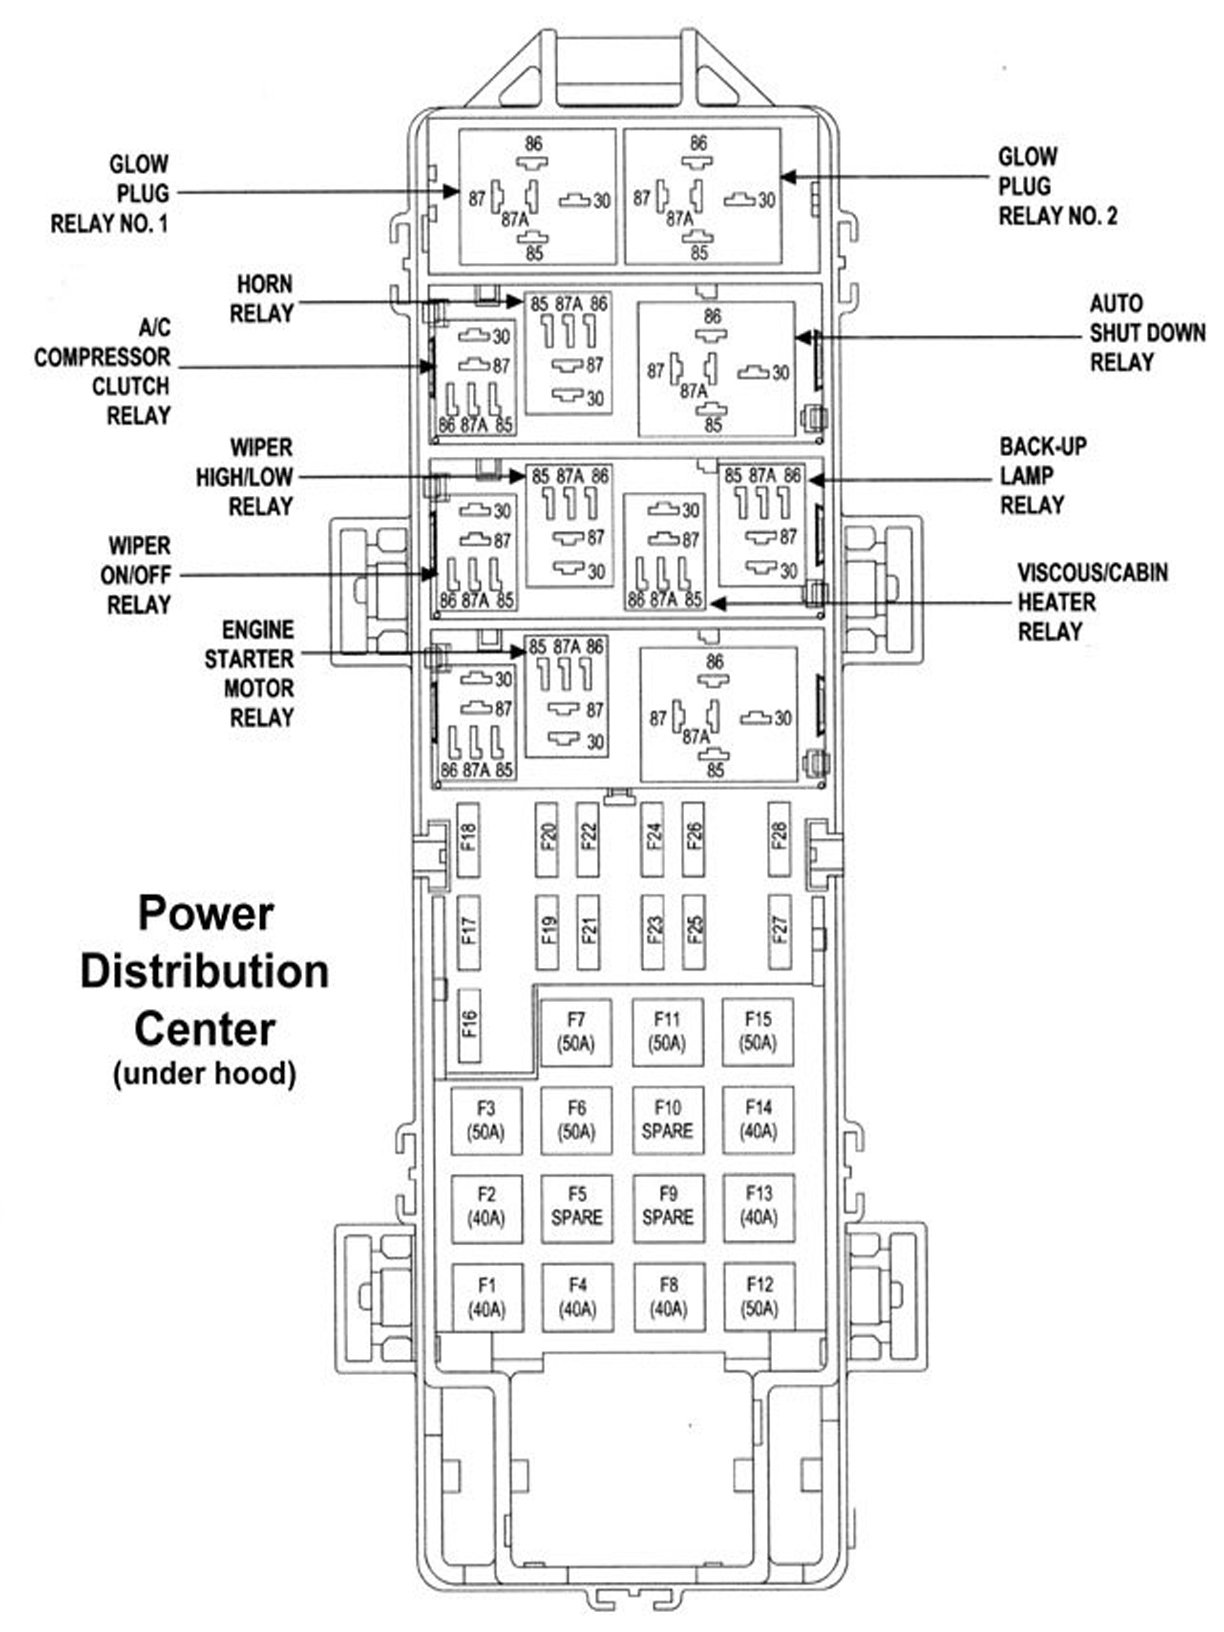 AAAAAAAAug 28 Fuse Box 04 91415 fuse box 96 jeep cherokee wiring diagram simonand 1998 jeep wrangler under hood fuse box diagram at couponss.co